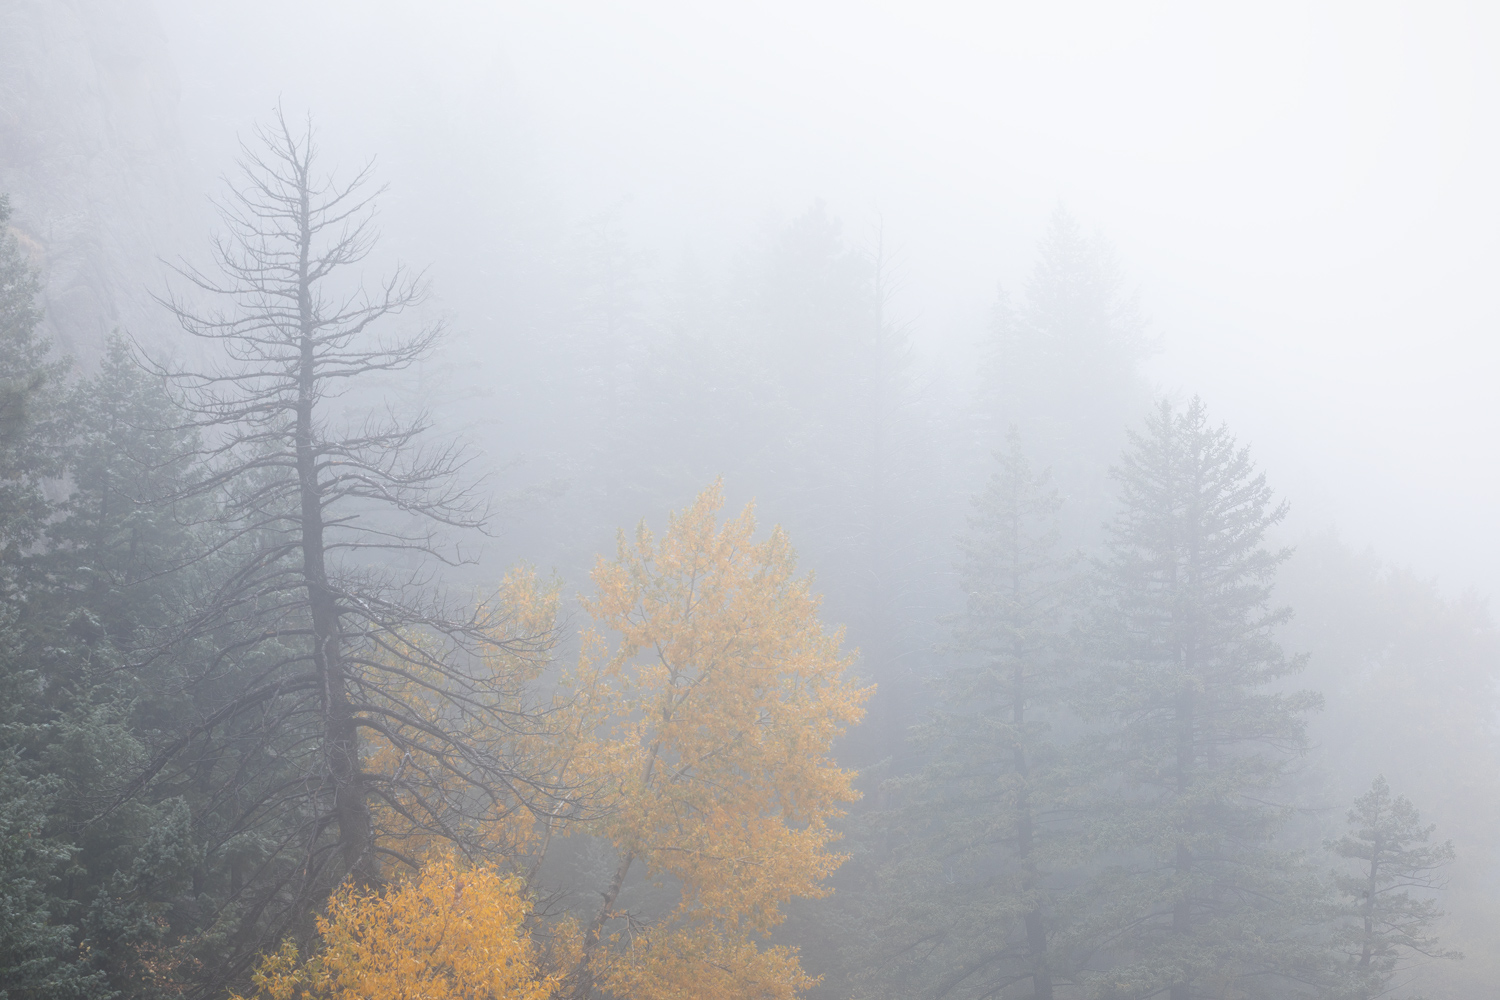 """Blaze in the Canyon"" - A lone yellow cottonwood glows among evergreen trees during a foggy autumn day in Boulder Canyon, Colorado."